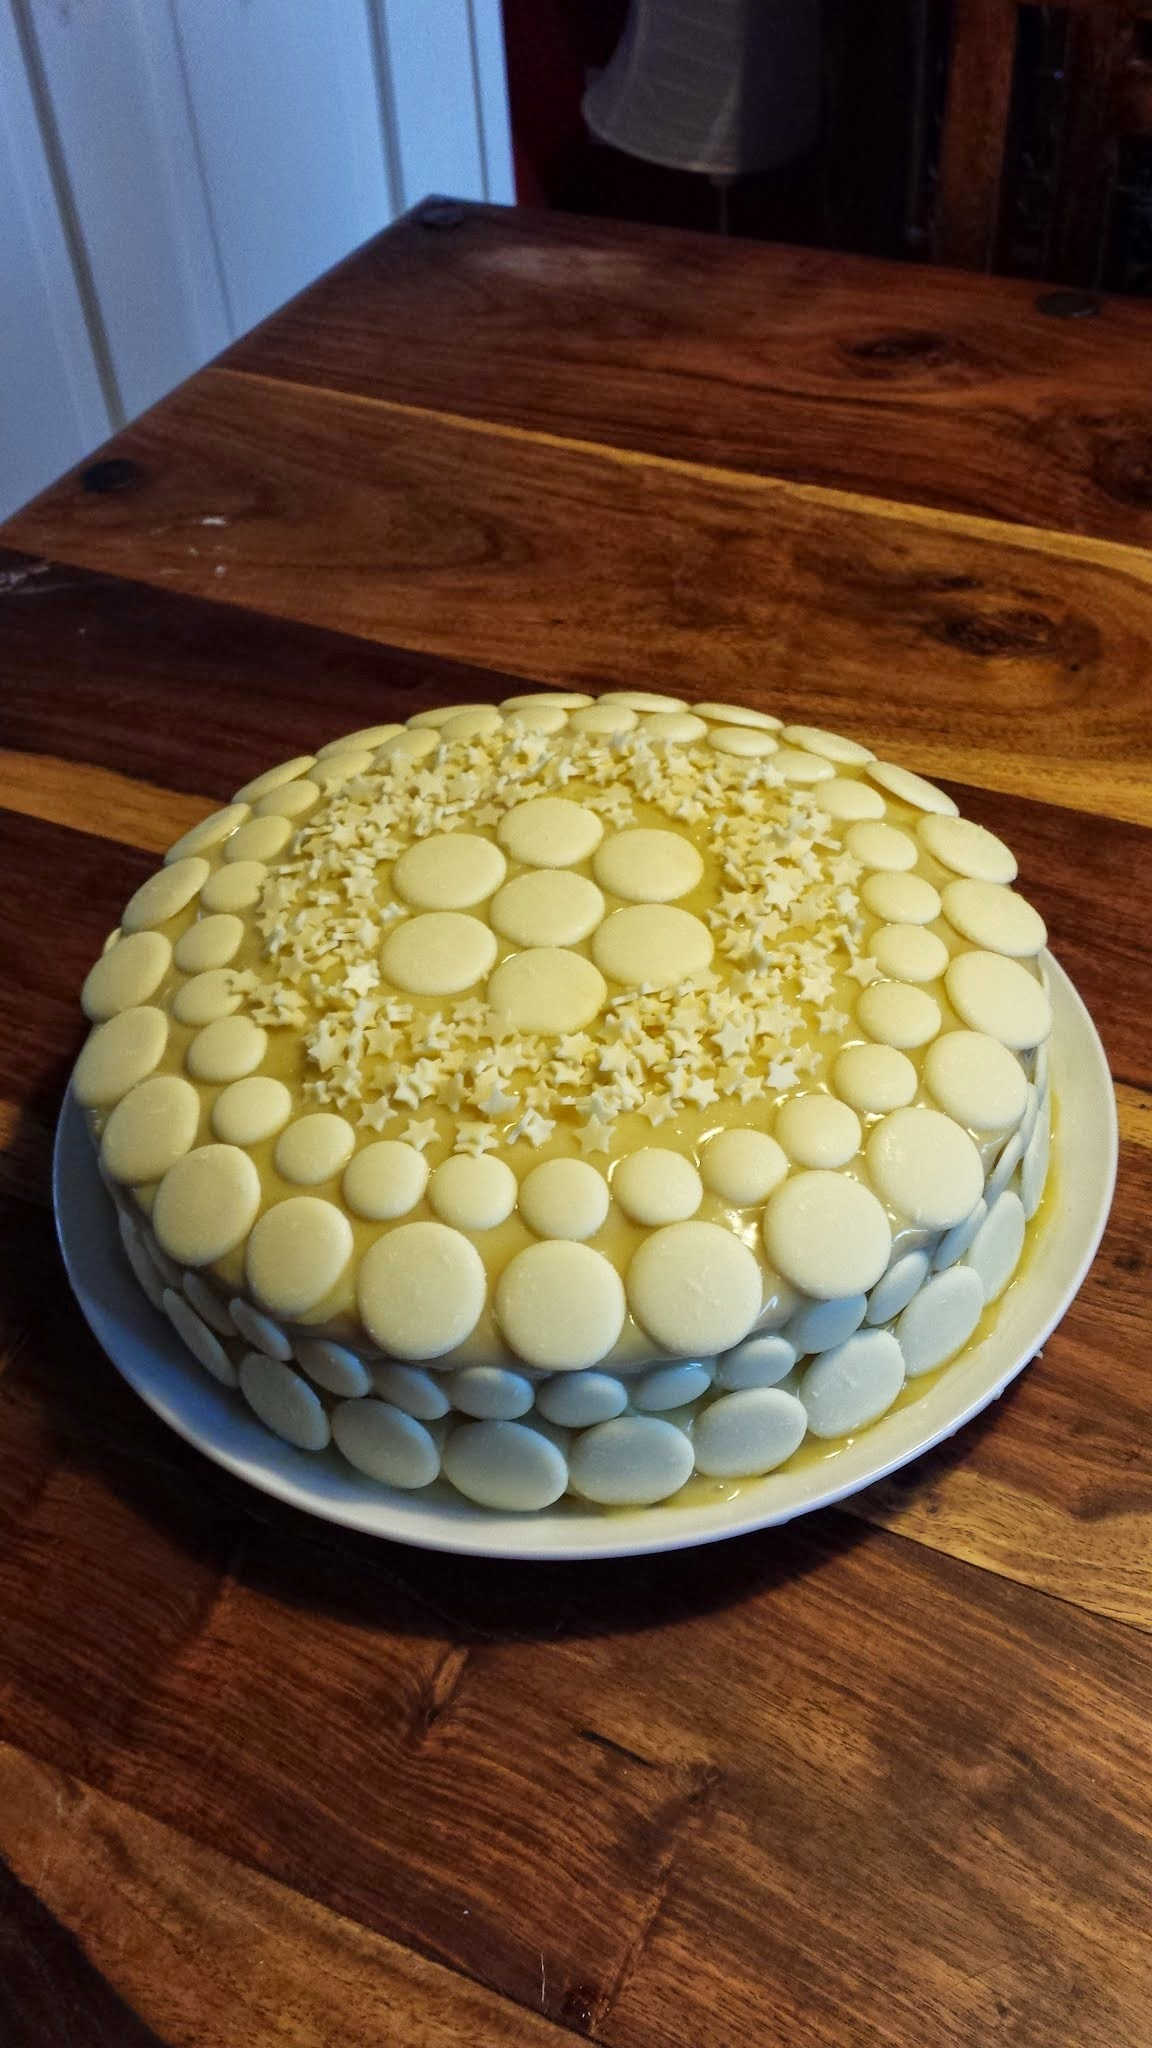 Recipe: White Chocolate and Lemon Mud Cake